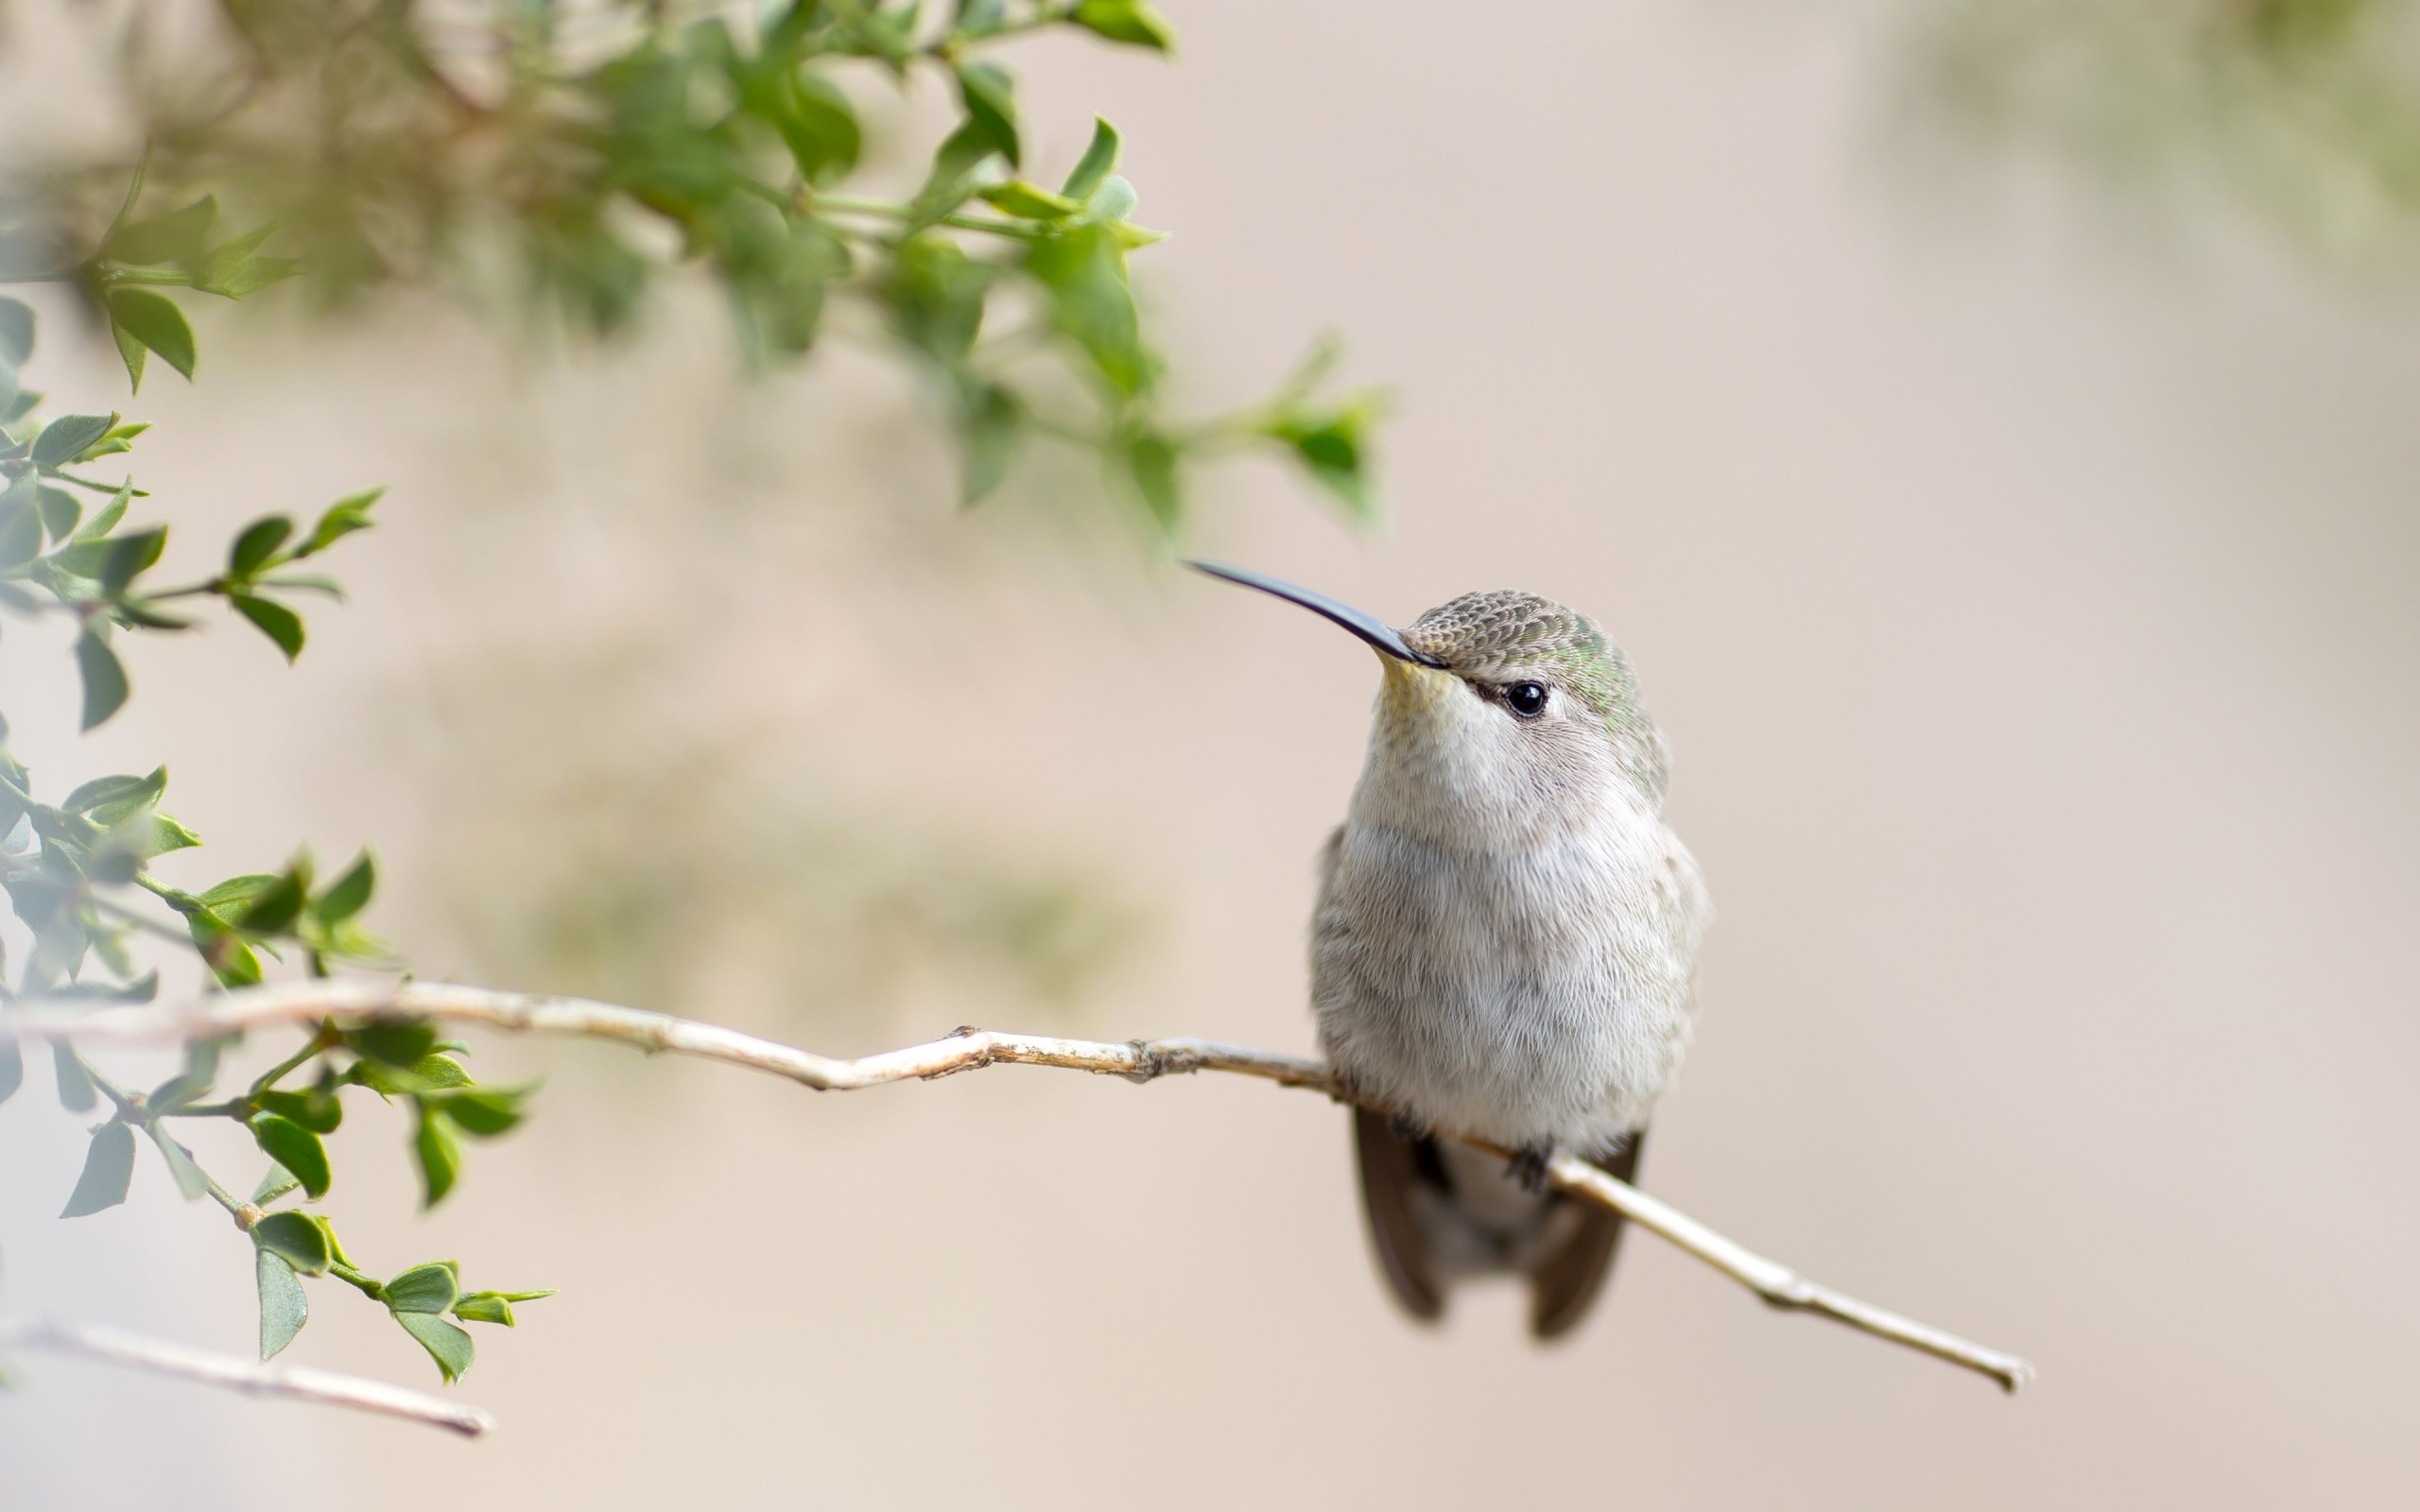 Posing Hummingbird Wallpaper for Desktop 2560x1600